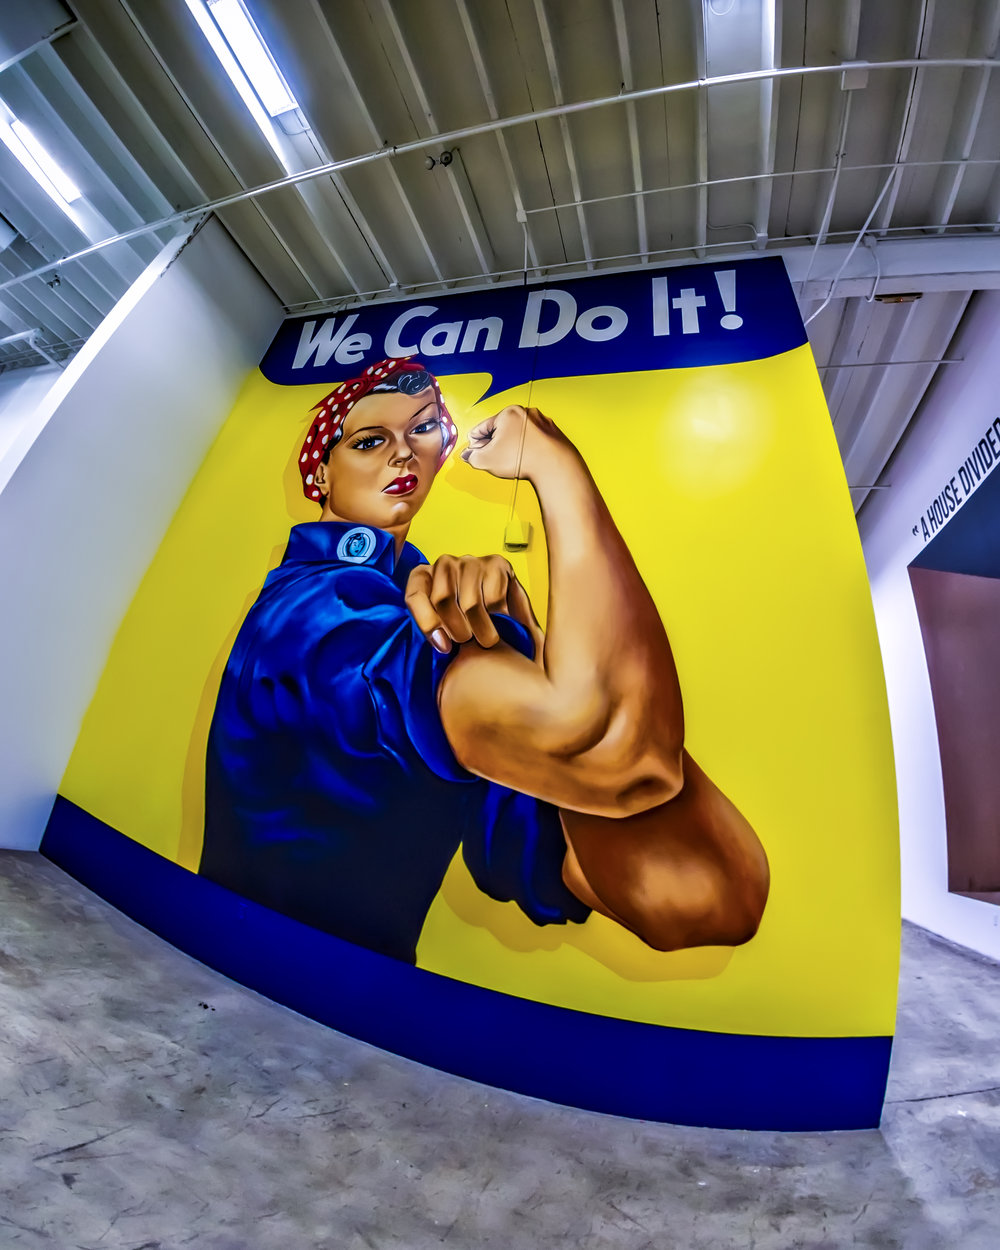 Wynwood-JayMacMuzik-Rosie-the-Riveter-MG_7263.jpg